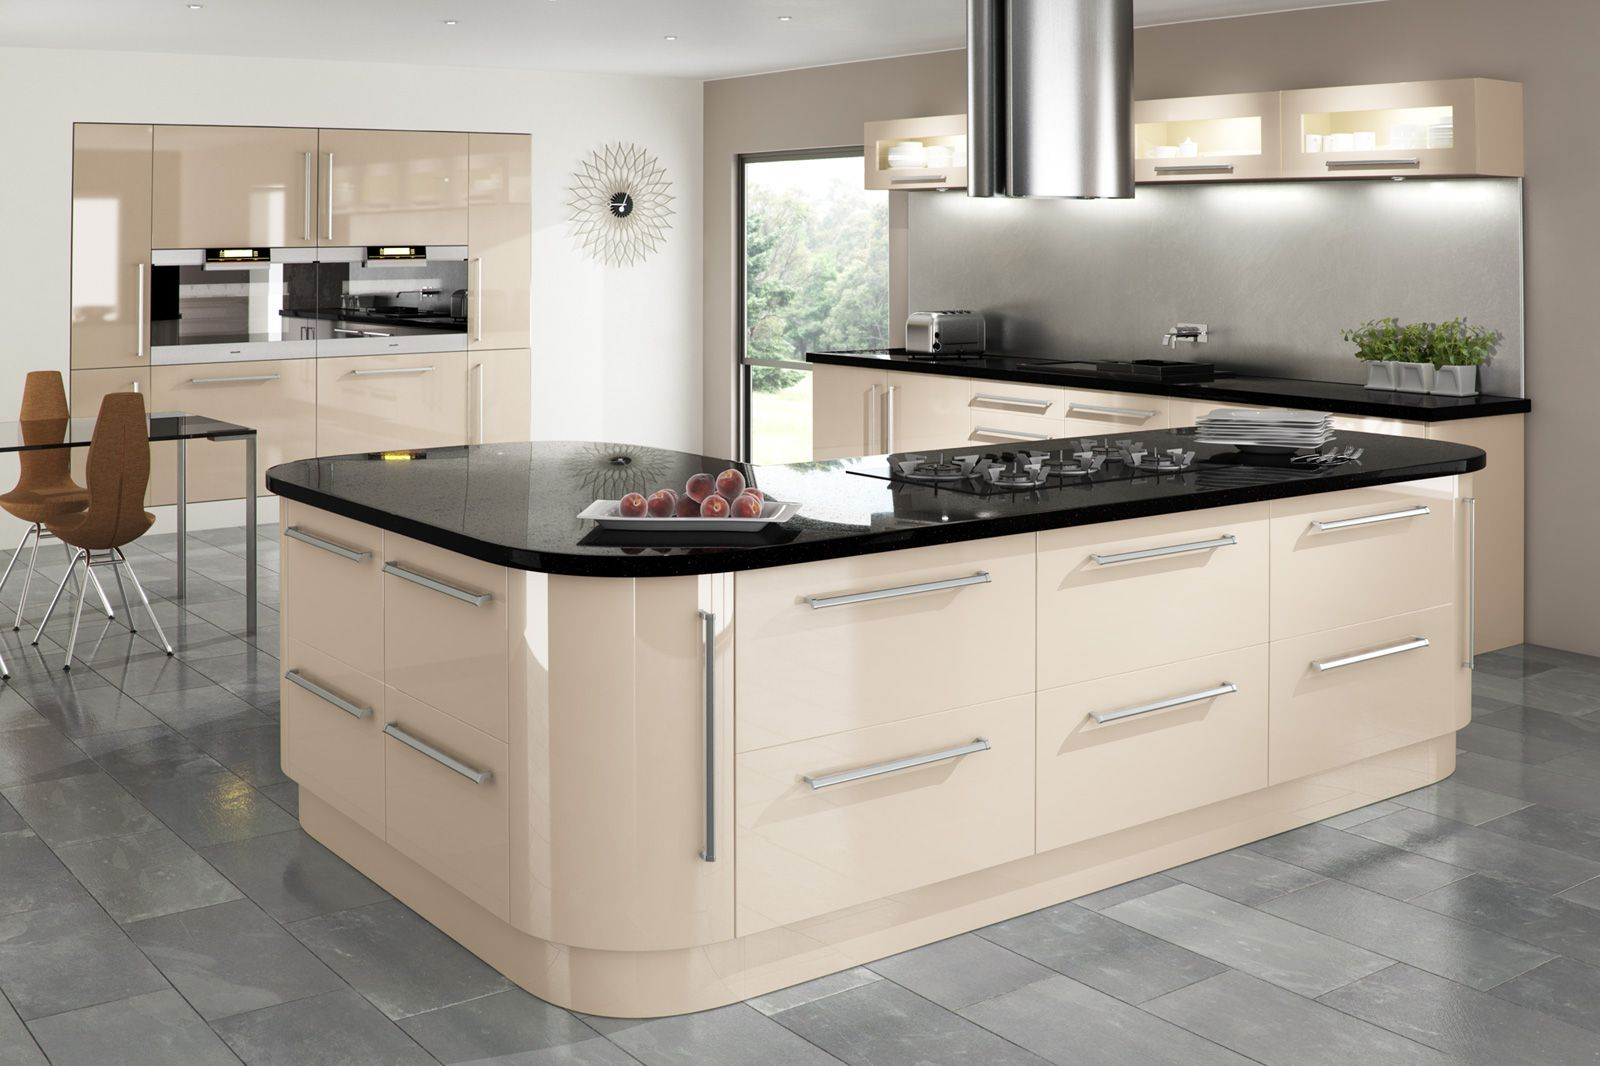 Cream Gloss Kitchen Cream Gloss Kitchen With Integrated Handle And Granite Worktop